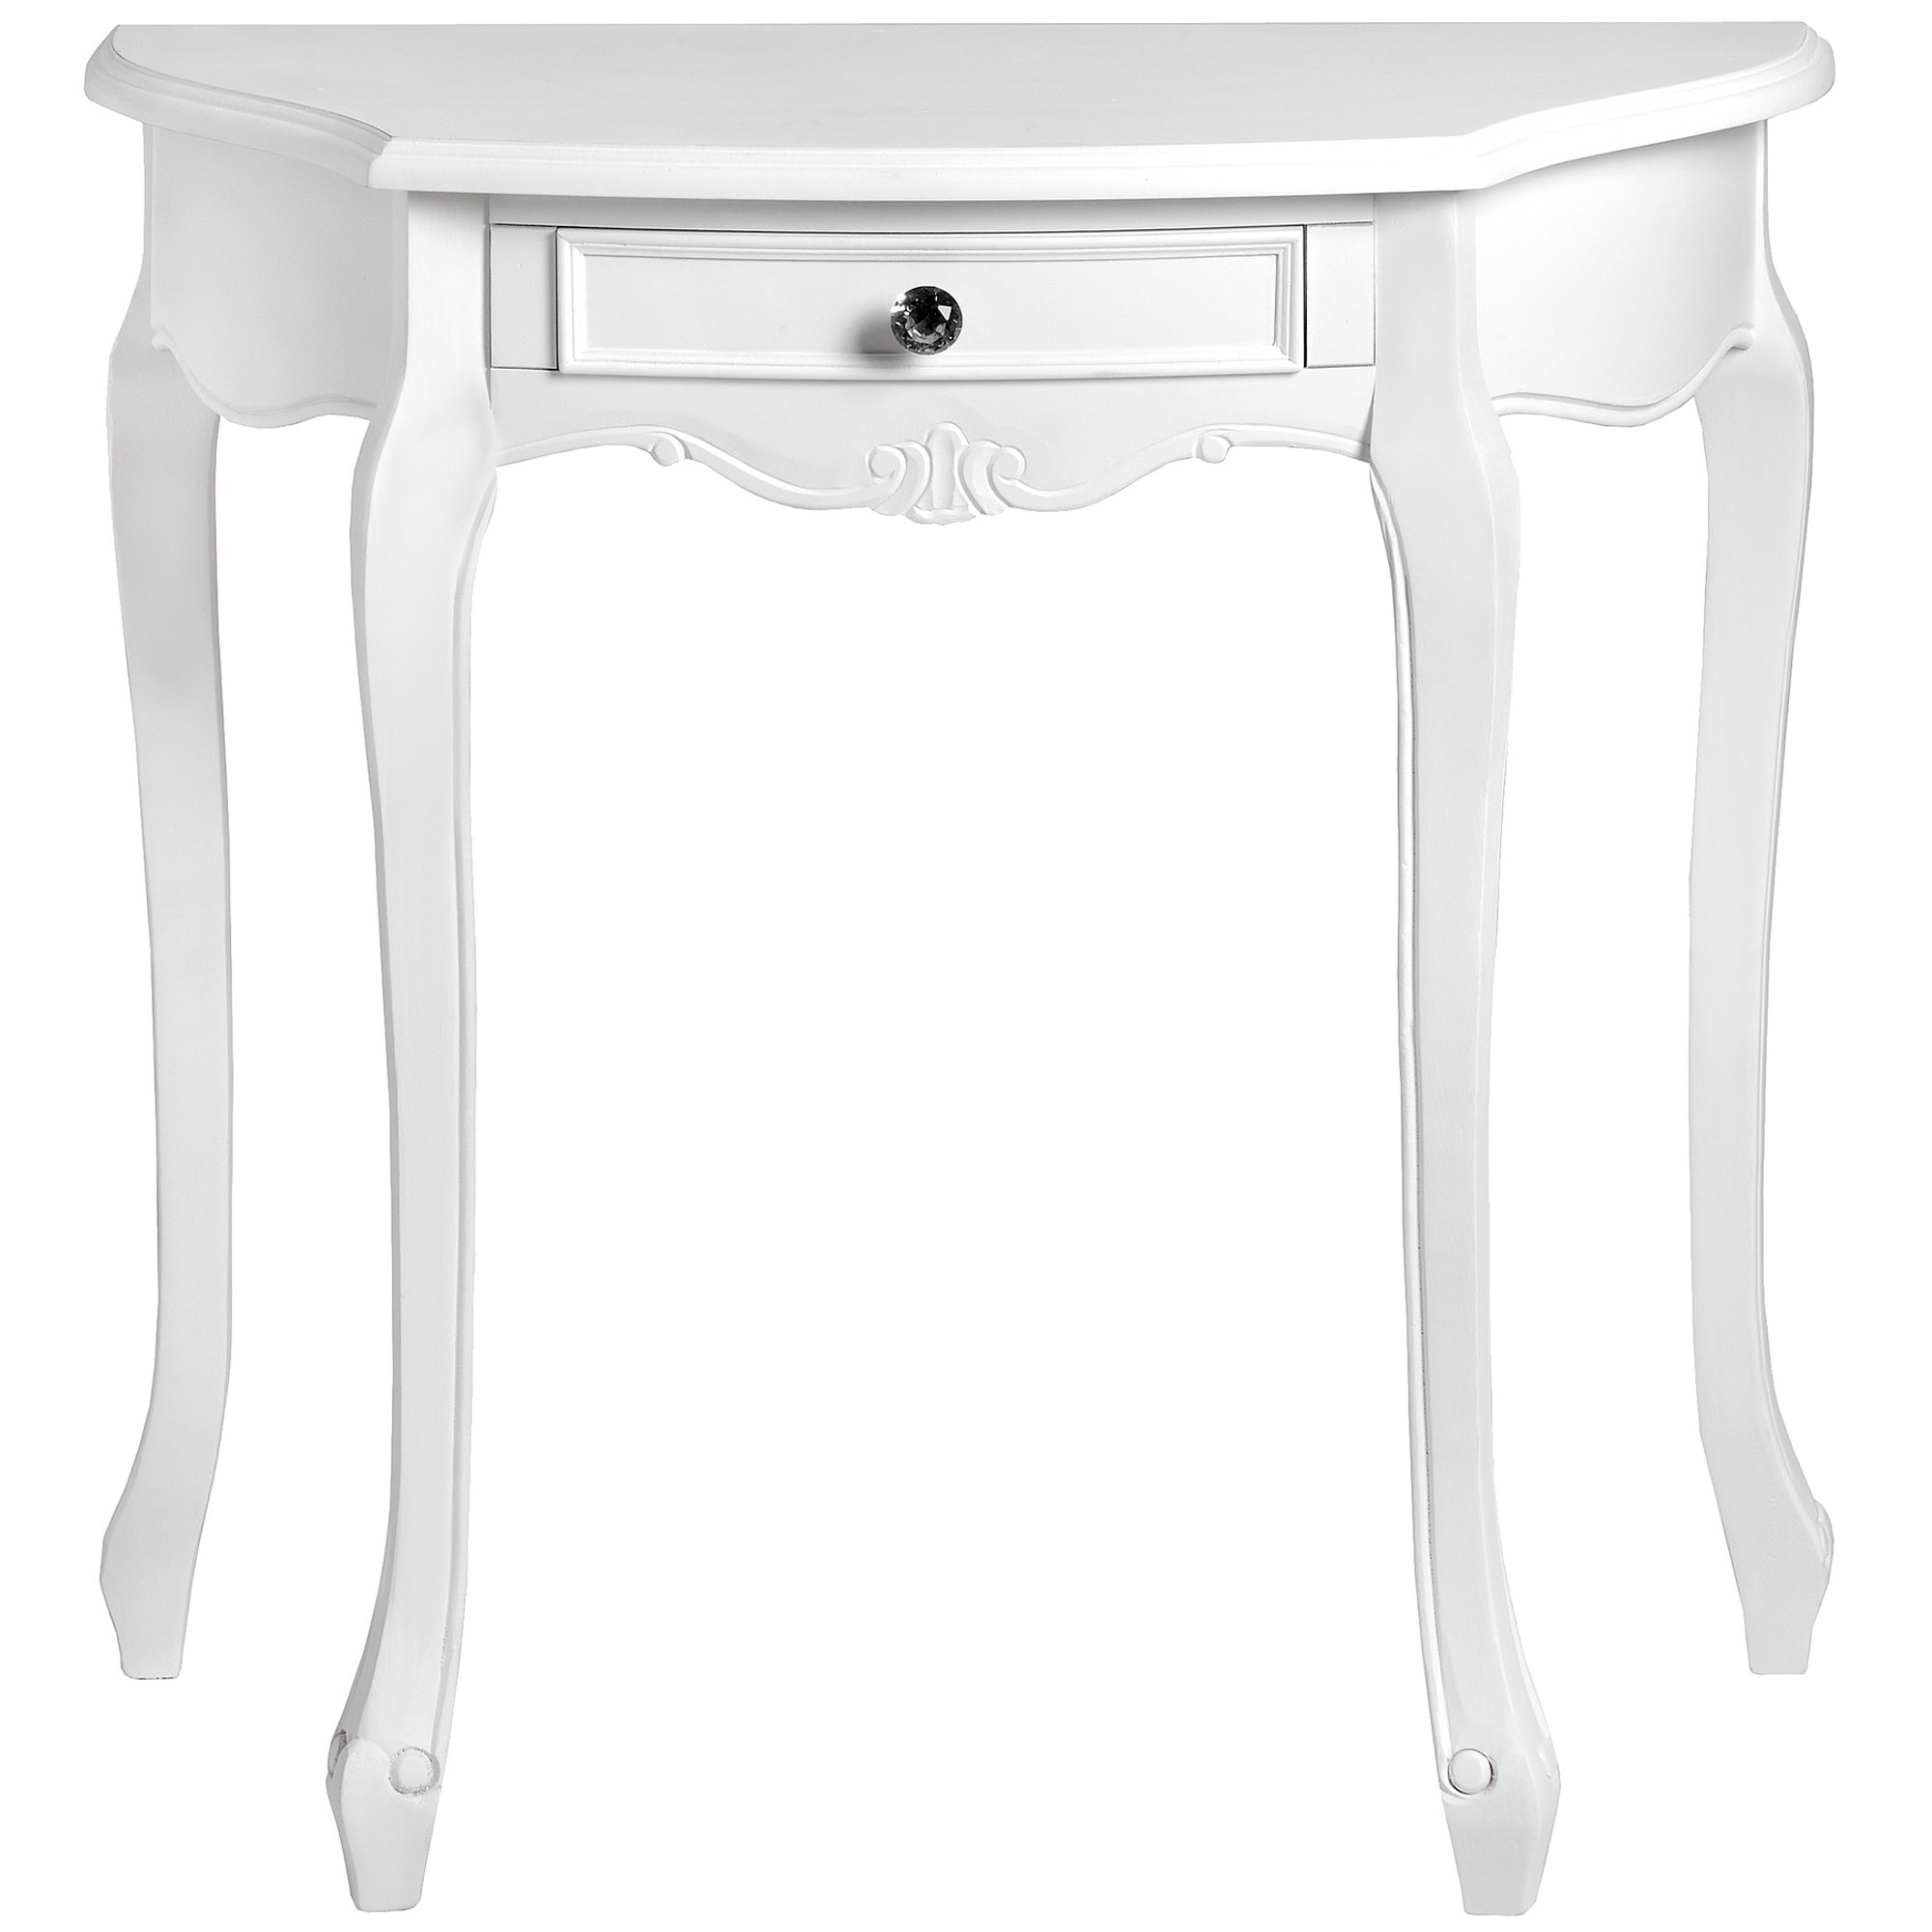 Fleur White Half Moon Shabby Chic Console Table Bedroom HomesDirect365